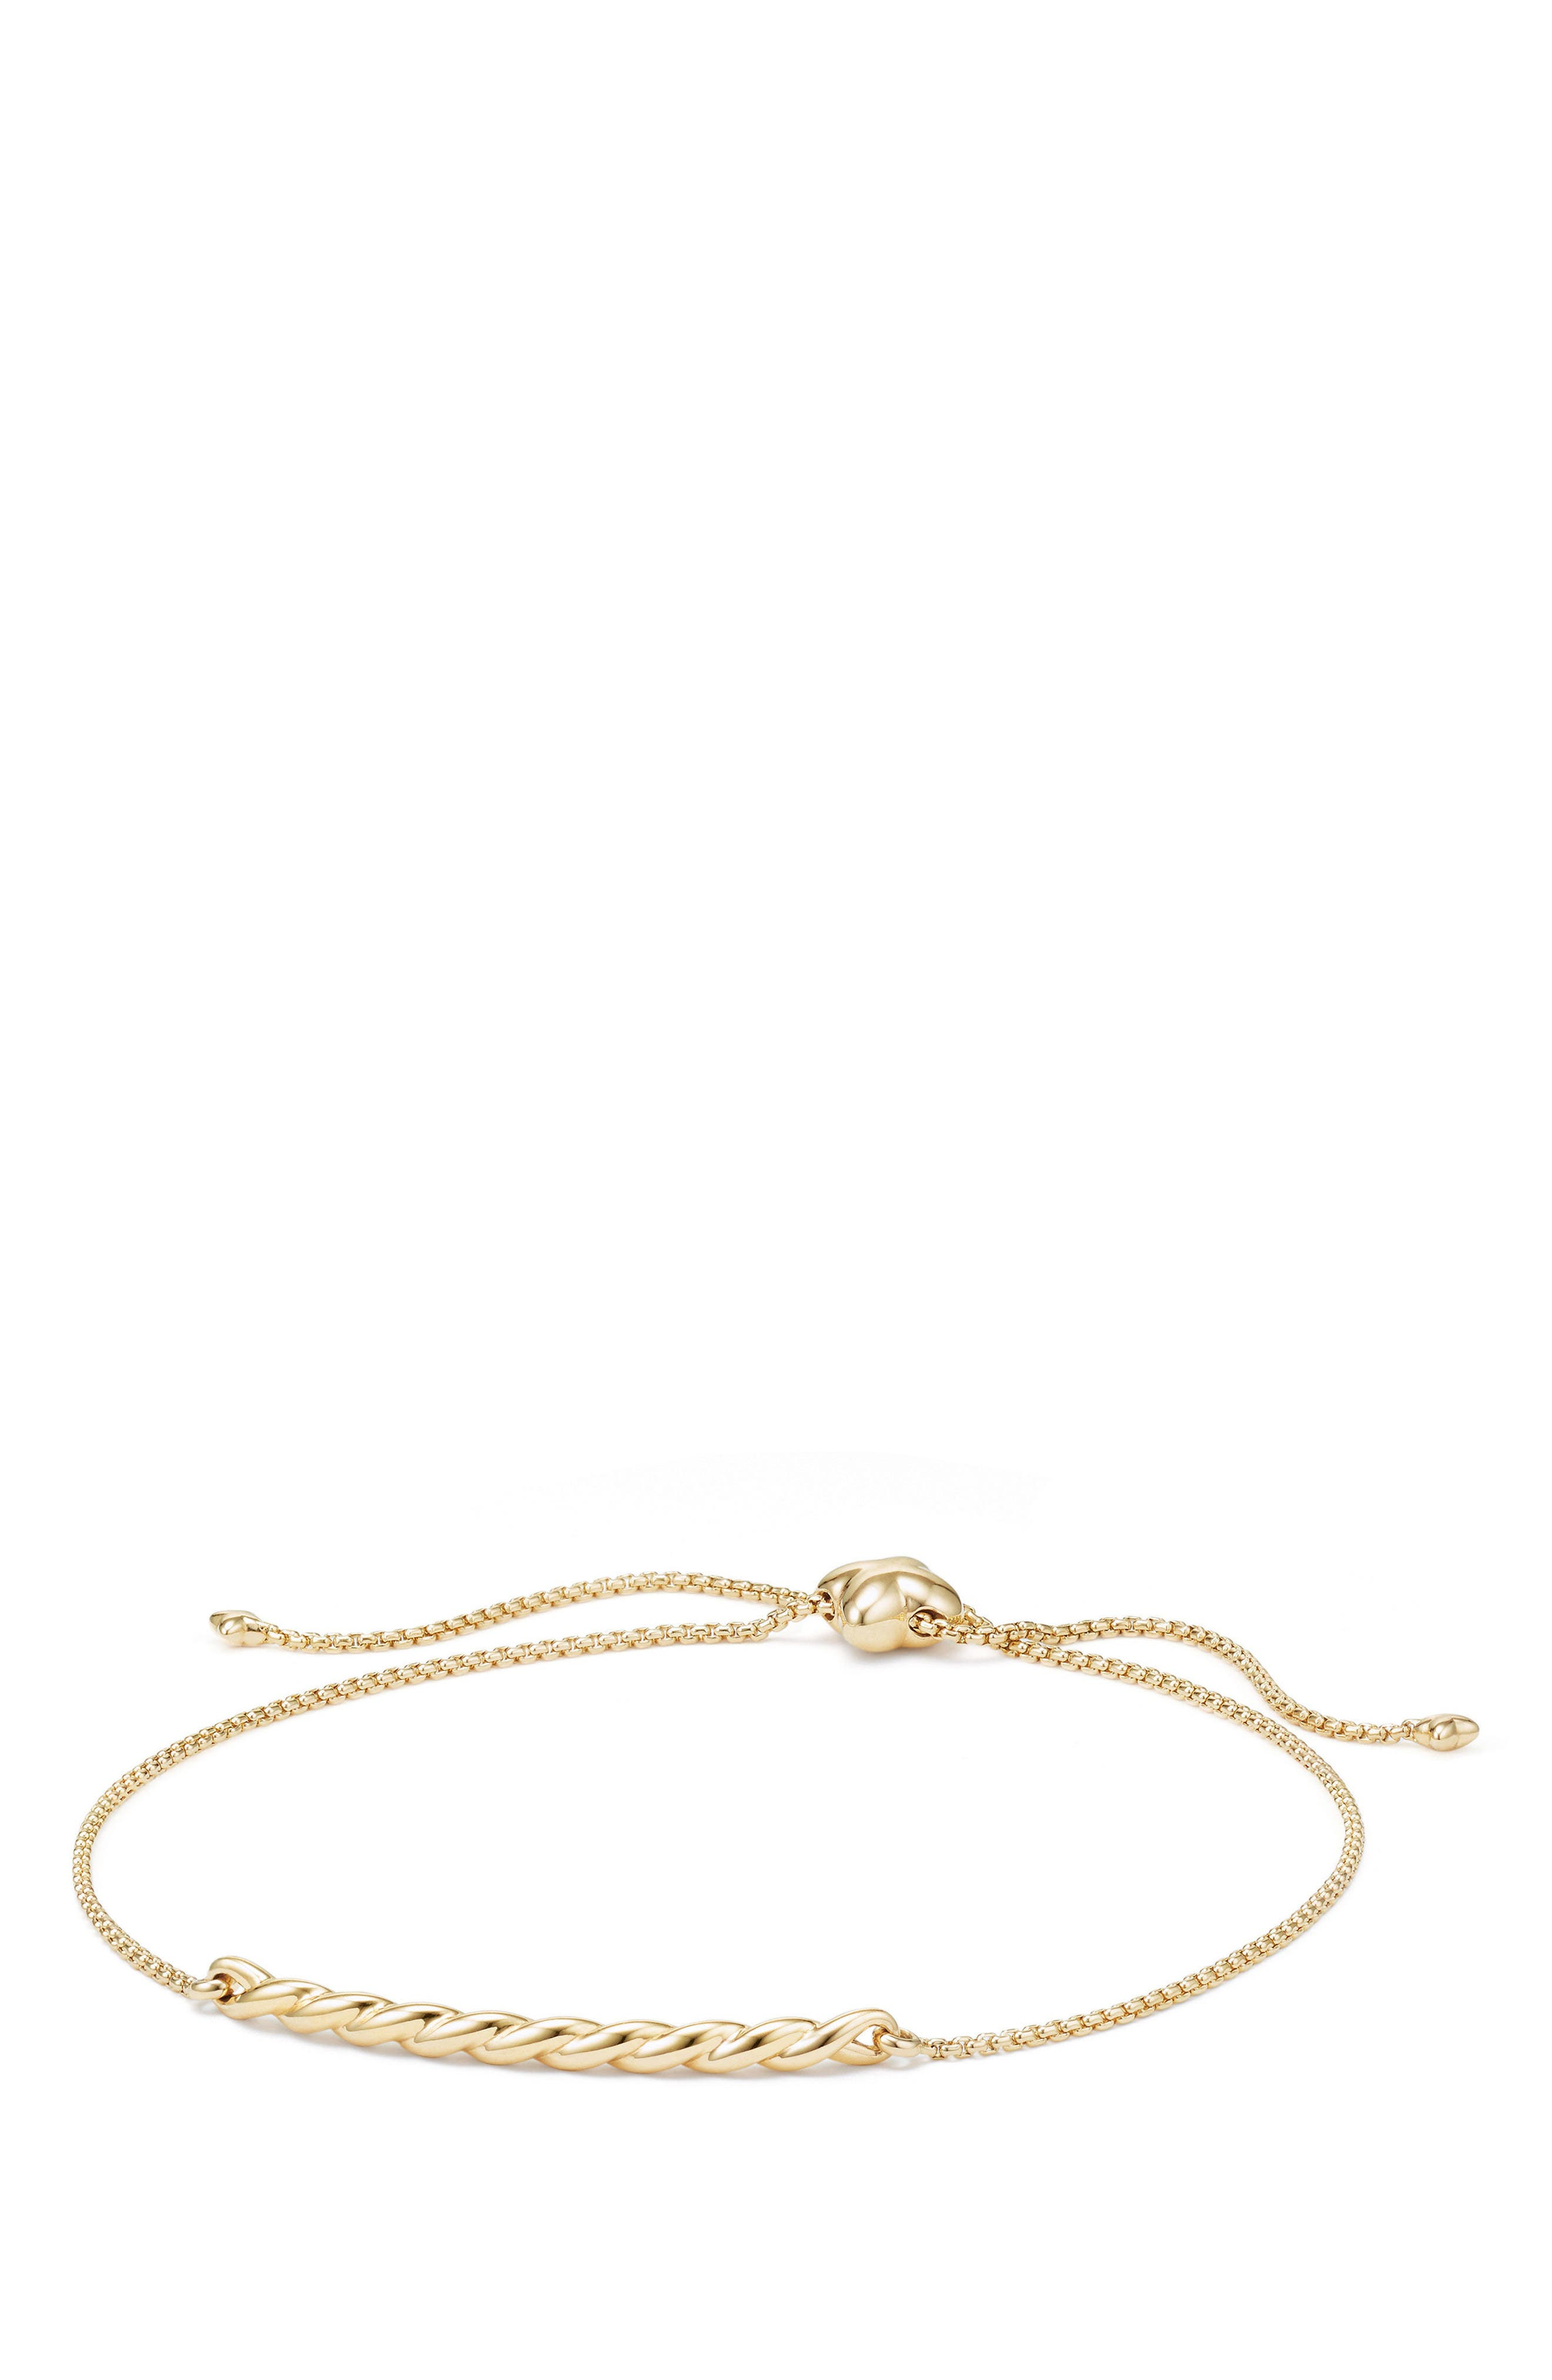 David Yurman Paveflex Station Bracelet in 18K Gold